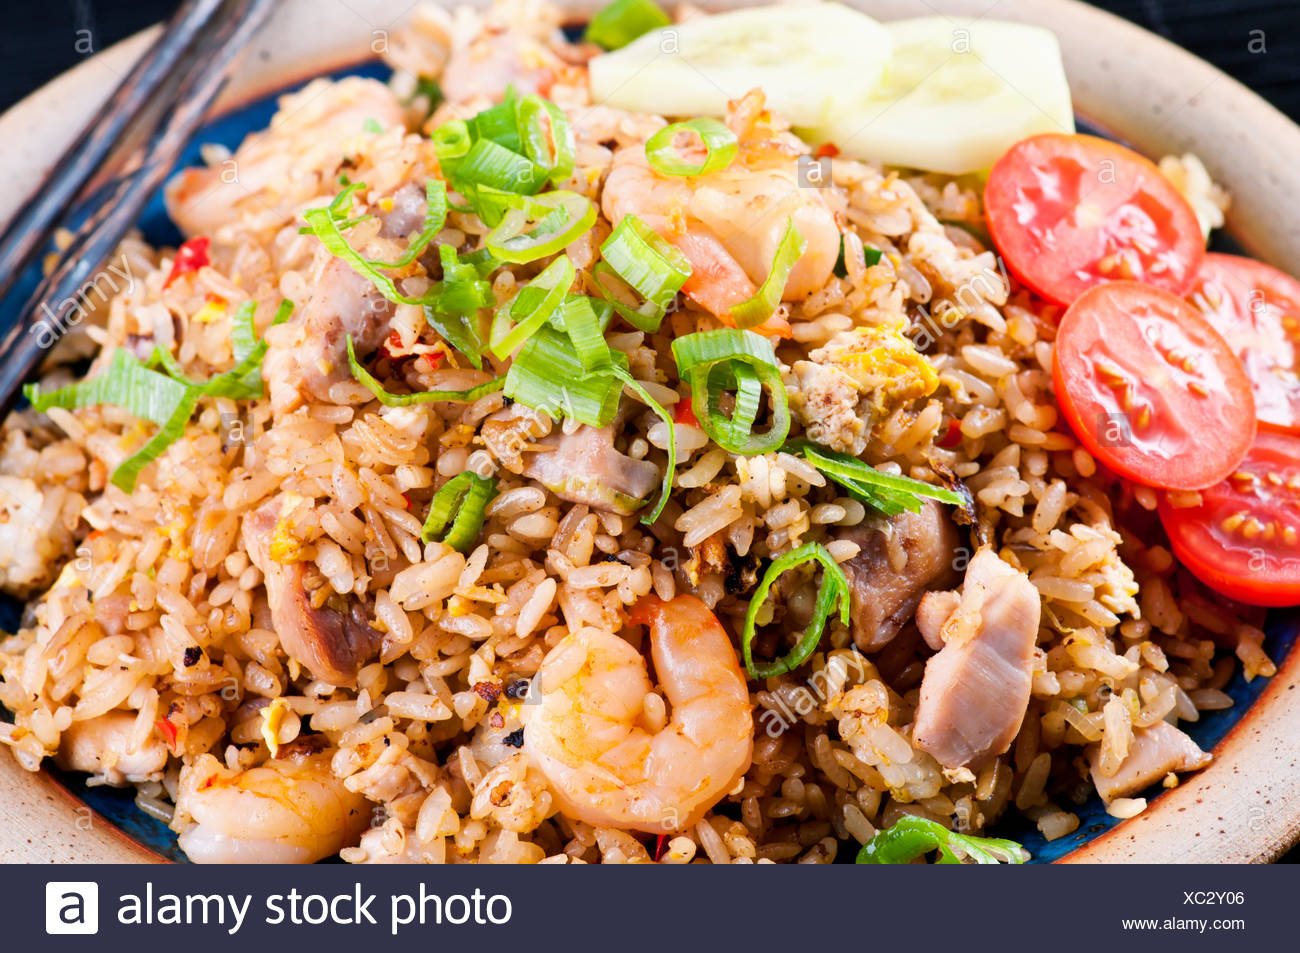 Asian rice dish goreng pics 584